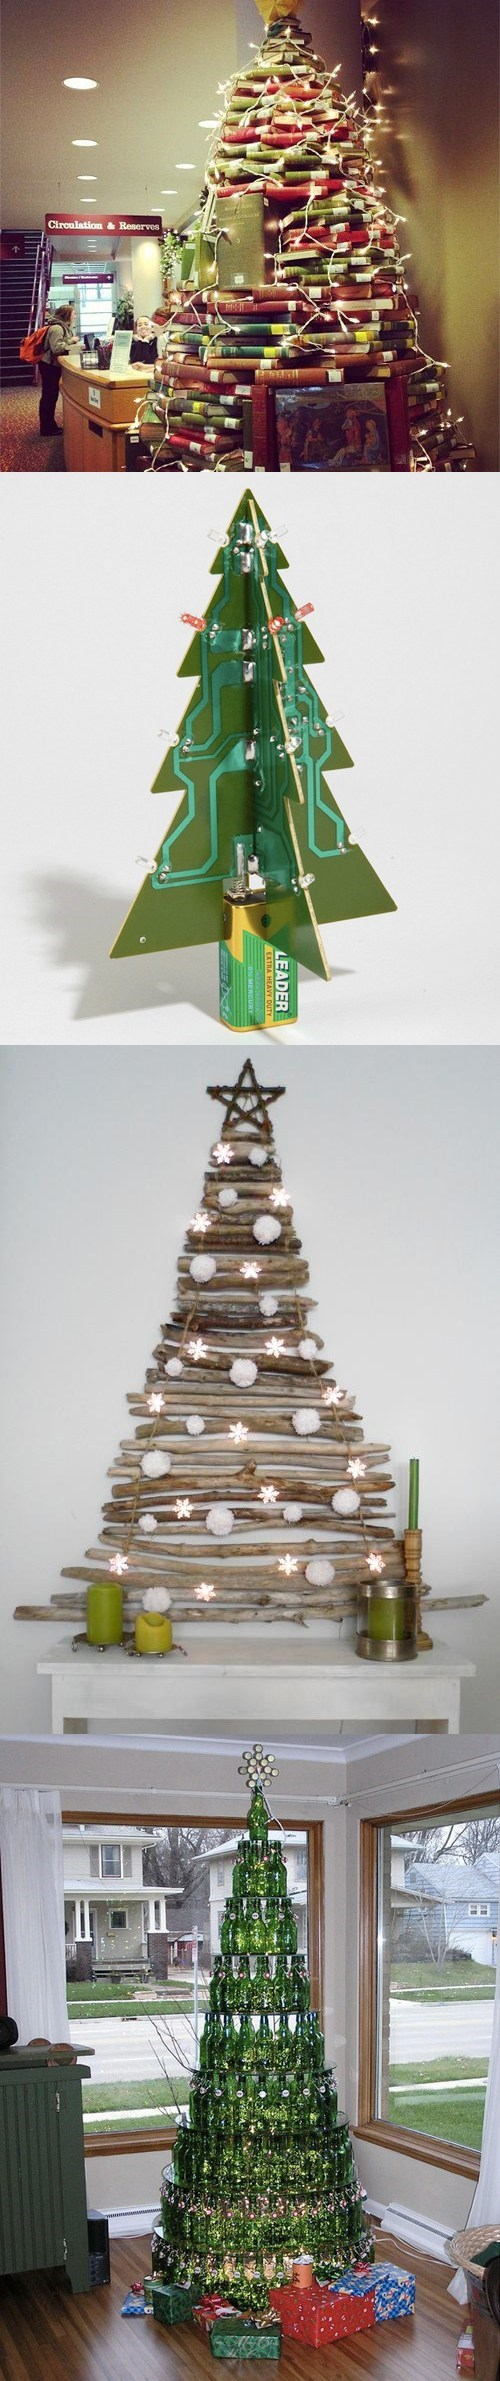 sketcy santas lights home made alternative christmas trees books - 6847329536